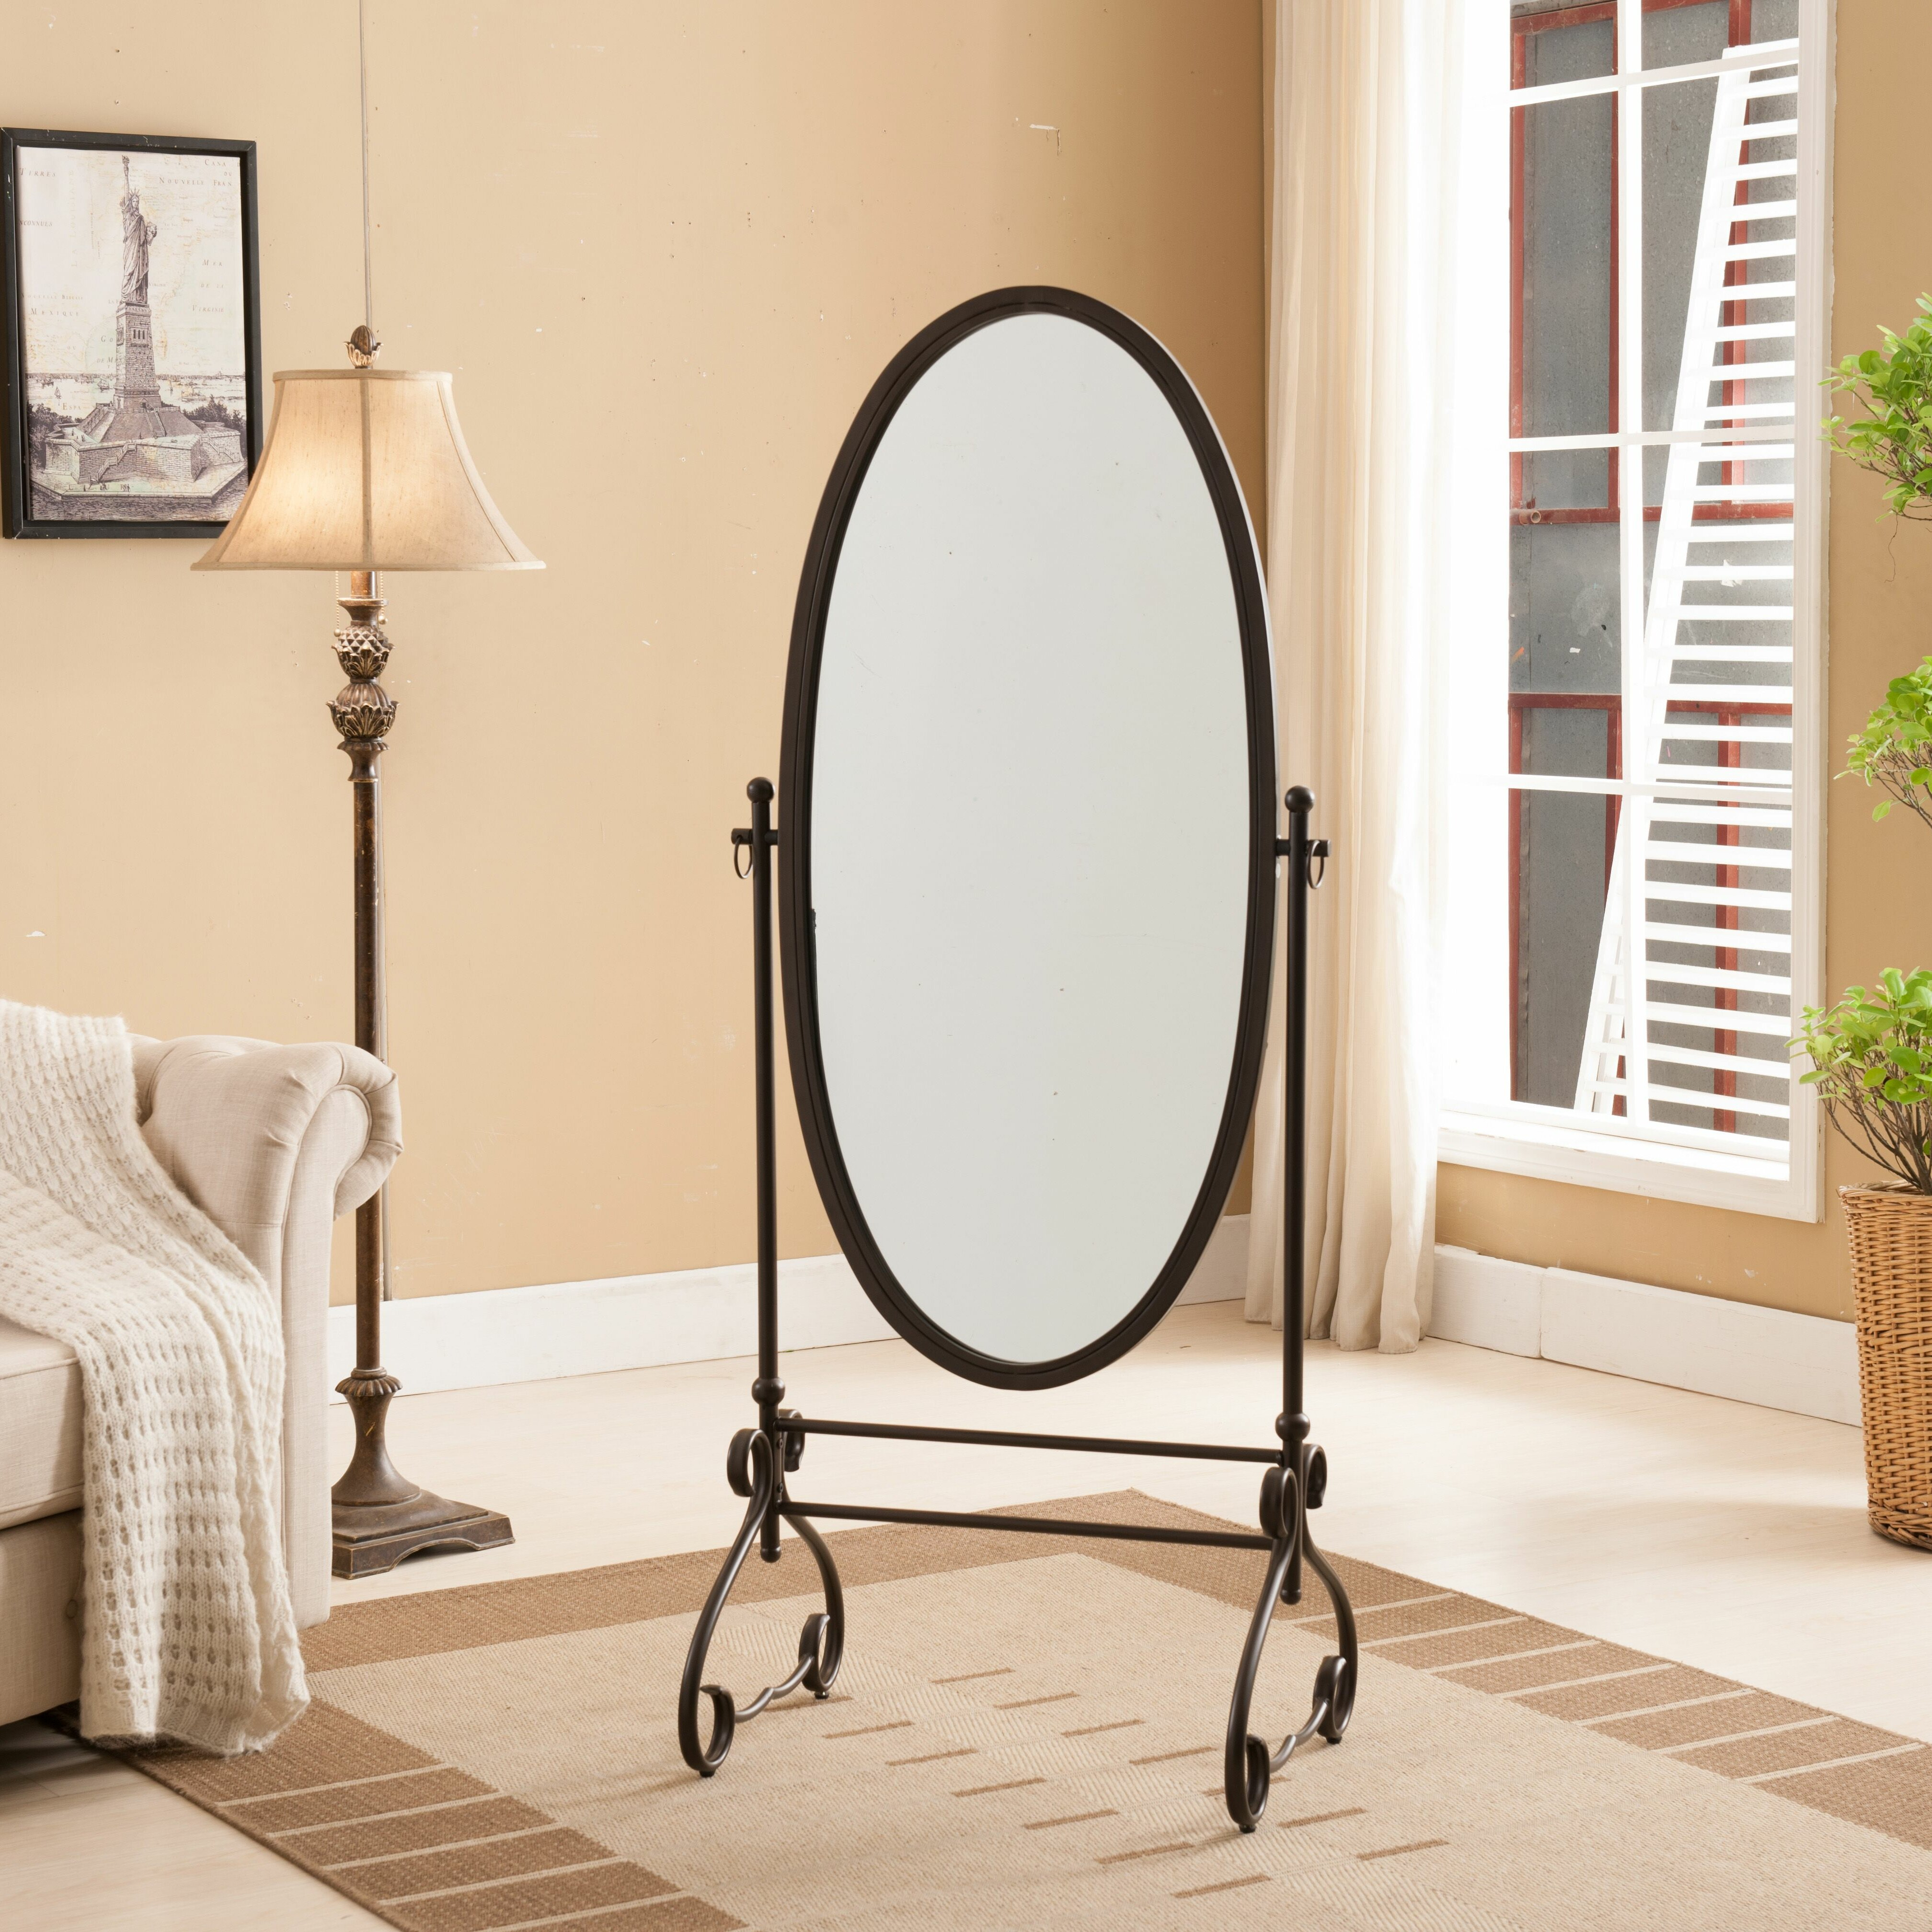 Darby Home Co Oval Standing Mirror & Reviews | Wayfair